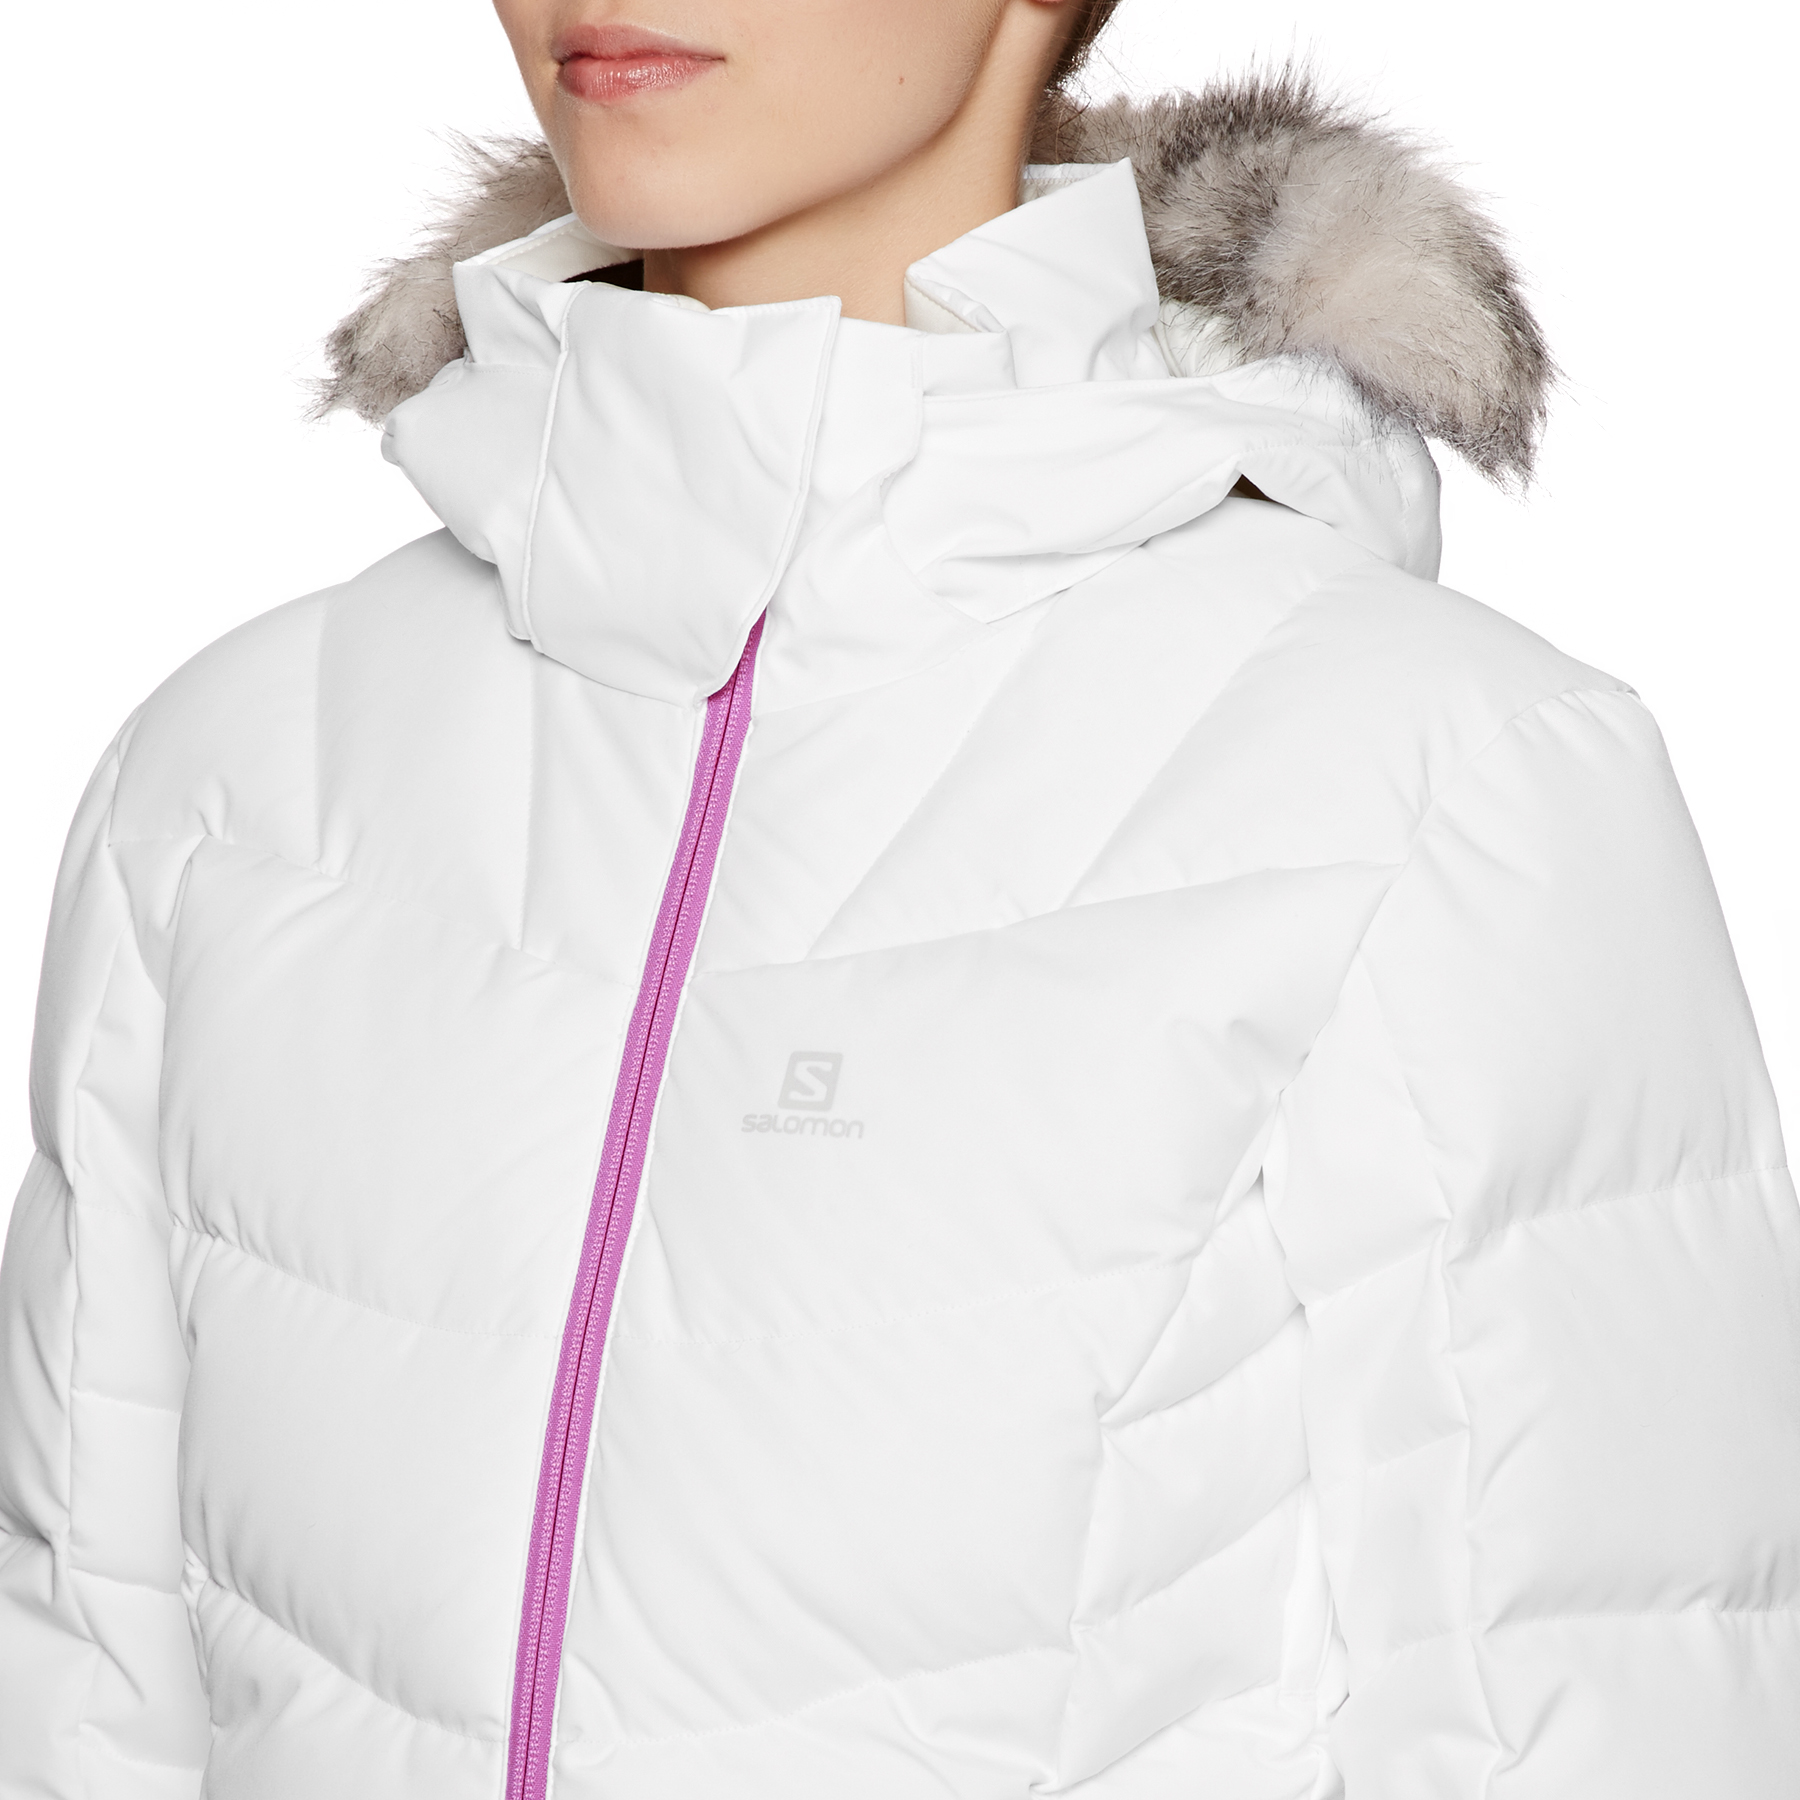 Salomon Icetown Womens Snow Jacket   Free Delivery Options